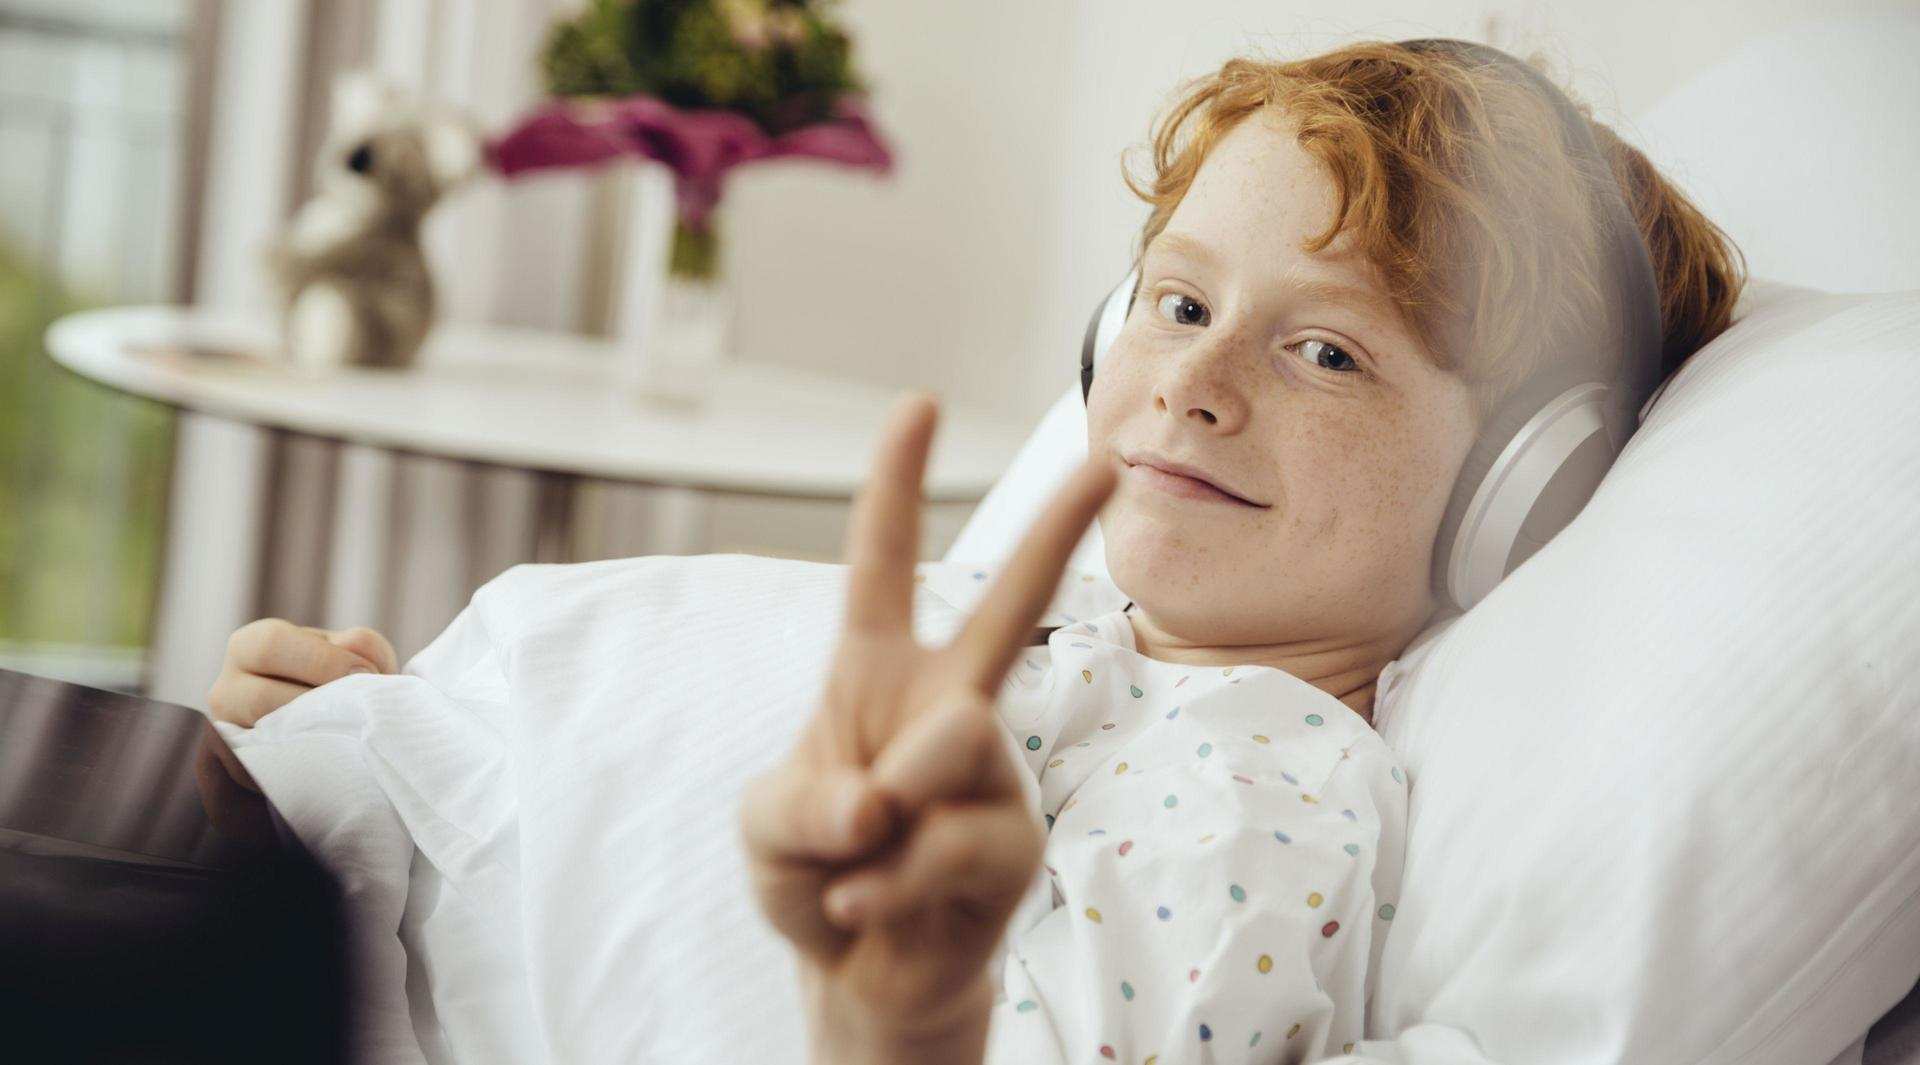 Boy in hospital bed smiling and showing peace sign.